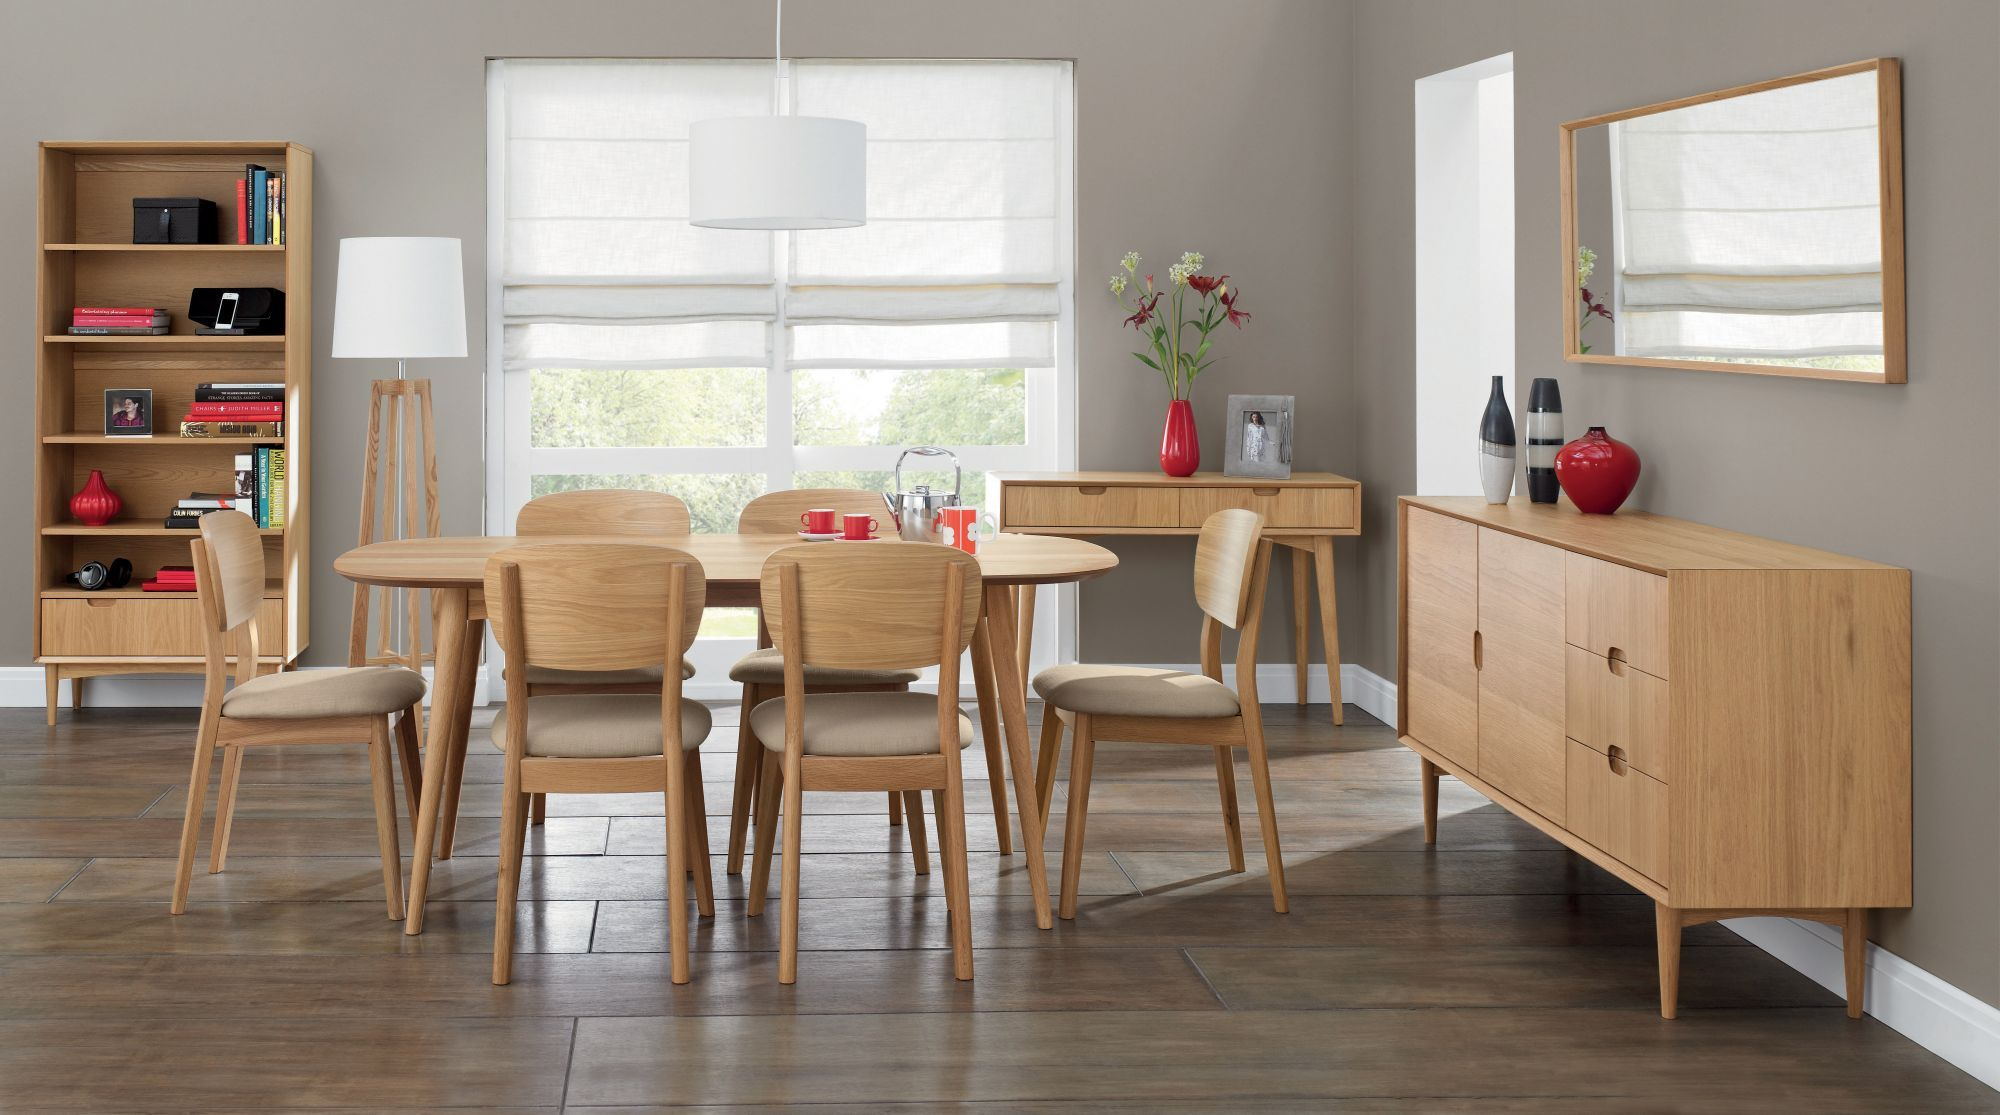 Pinchristine Leeson On Dining Tables  Pinterest  Dining Impressive Oak Dining Room Table And 6 Chairs Inspiration Design